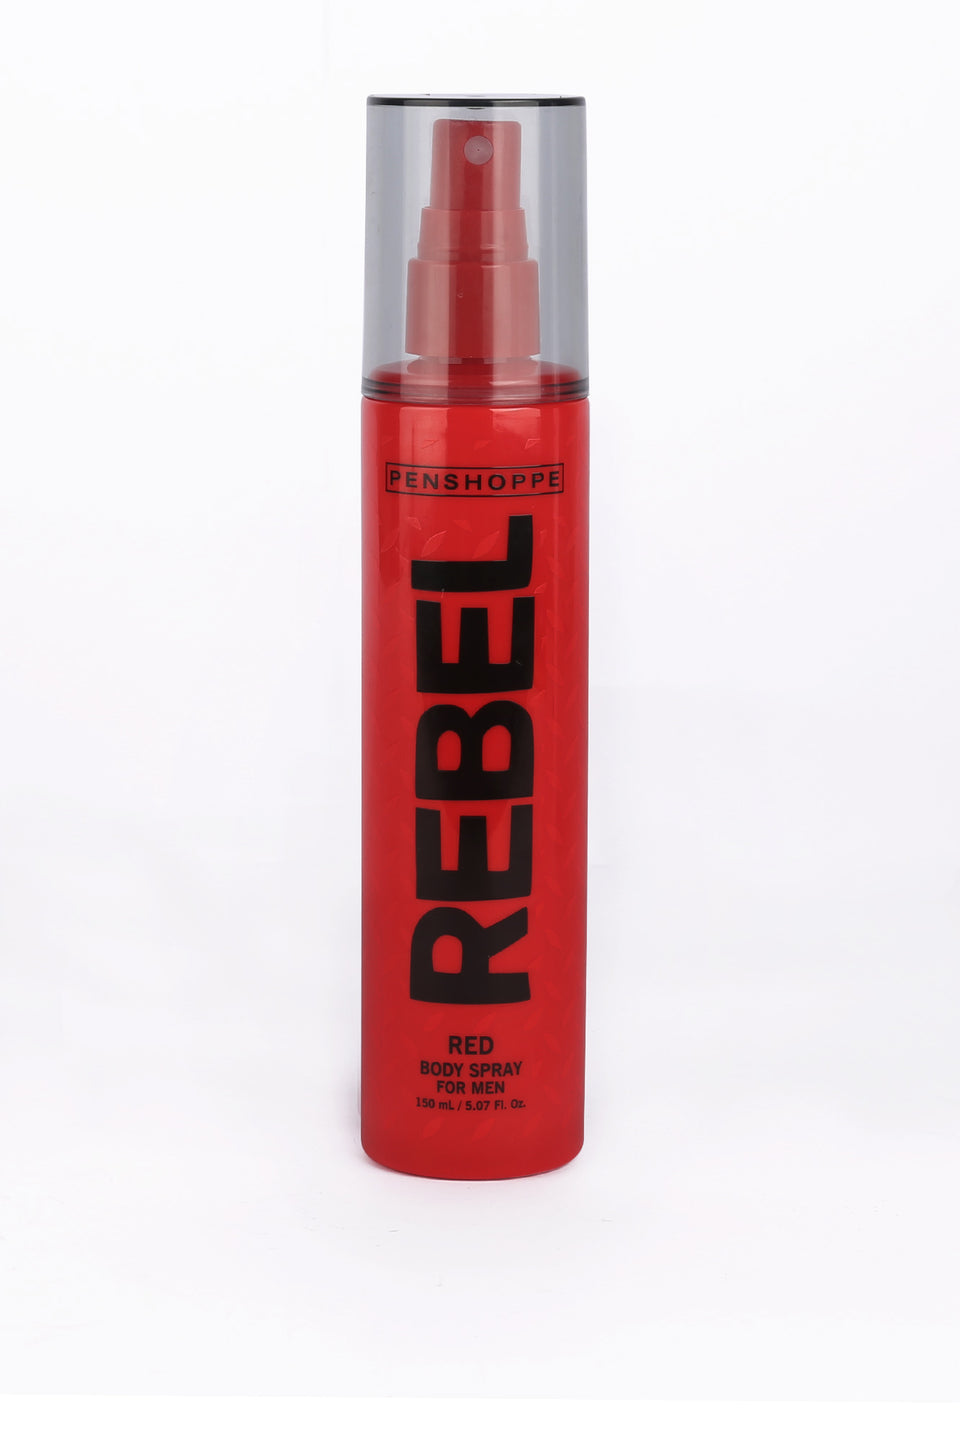 Penshoppe Rebel Red Body Spray For Men 150ML